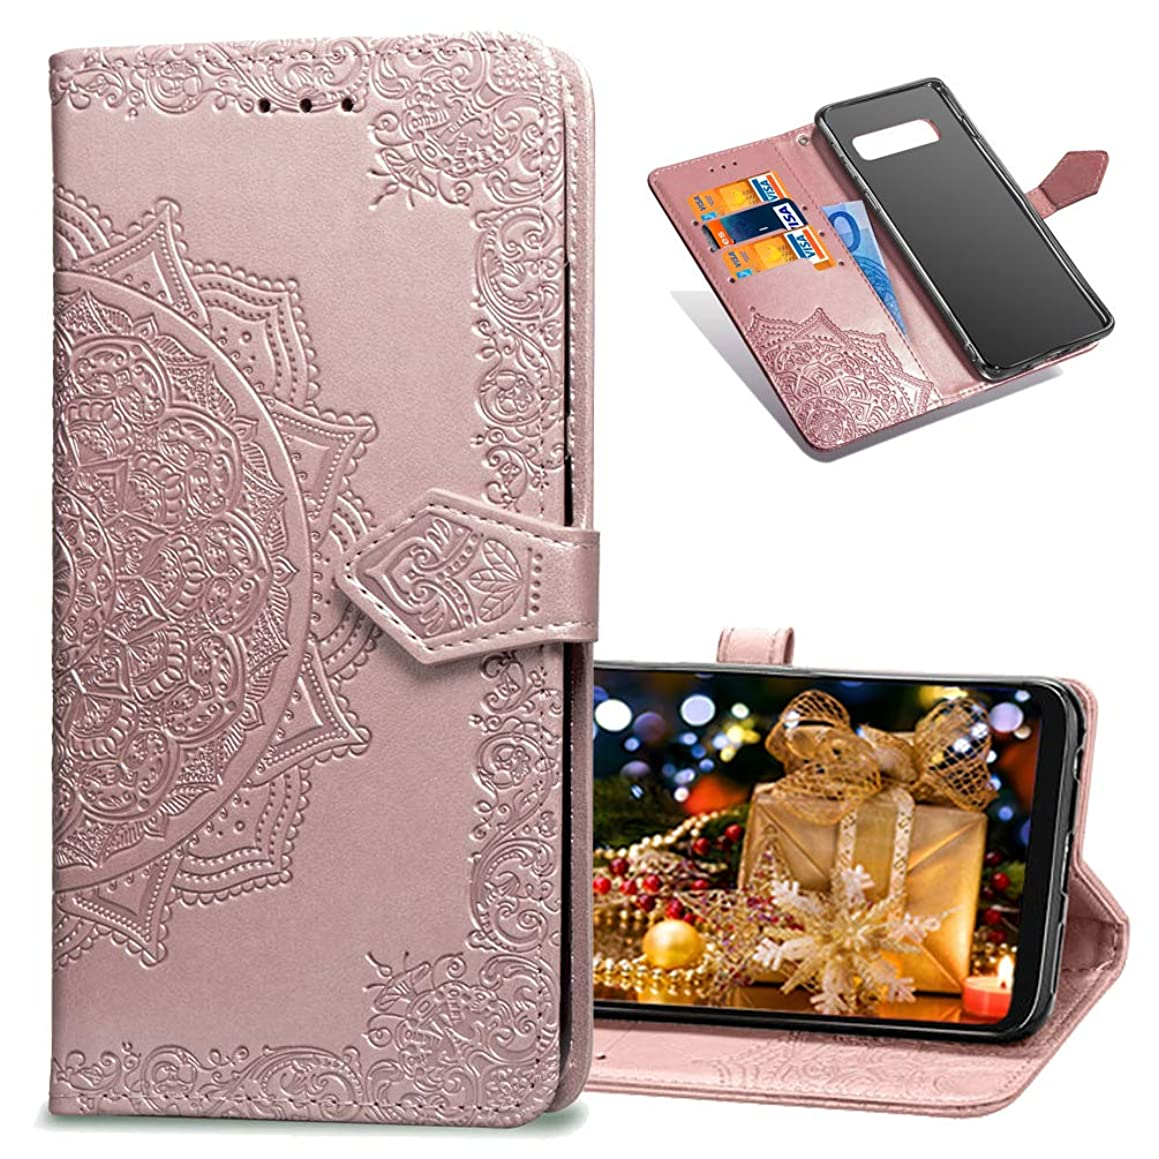 COTDINFORCA Samsung Galaxy S10 Wallet Case, Slim Premium PU Flip Cover Mandala Embossed Full Body Protection with Card Holder Magnetic Closure for Samsung Galaxy S10 (2019). SD Mandala - Rose Gold